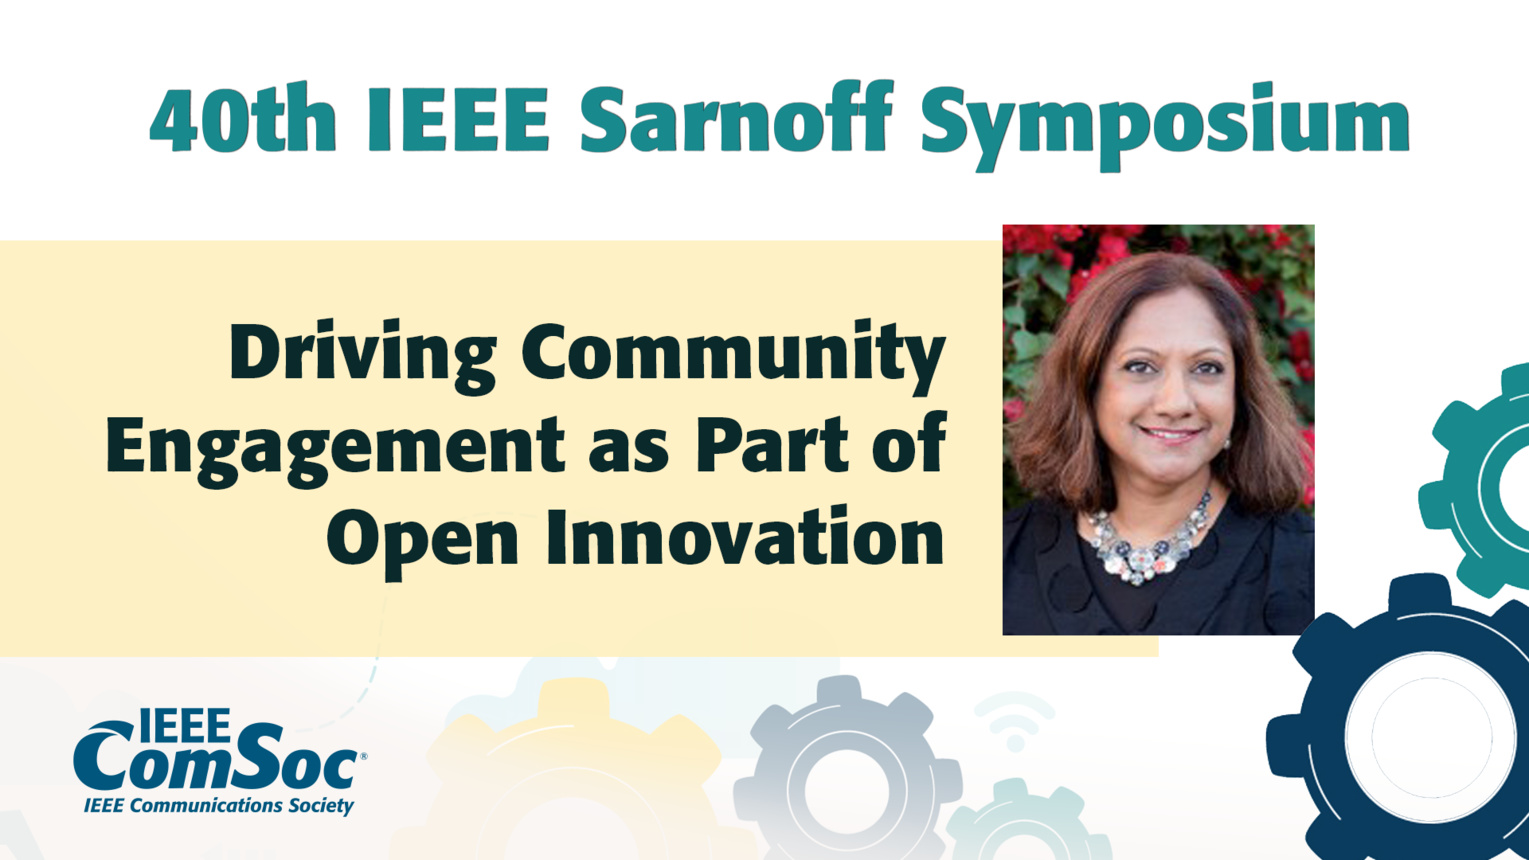 Driving Community Engagement as Part of Open Innovation - Nithya Ruff - IEEE Sarnoff Symposium, 2019